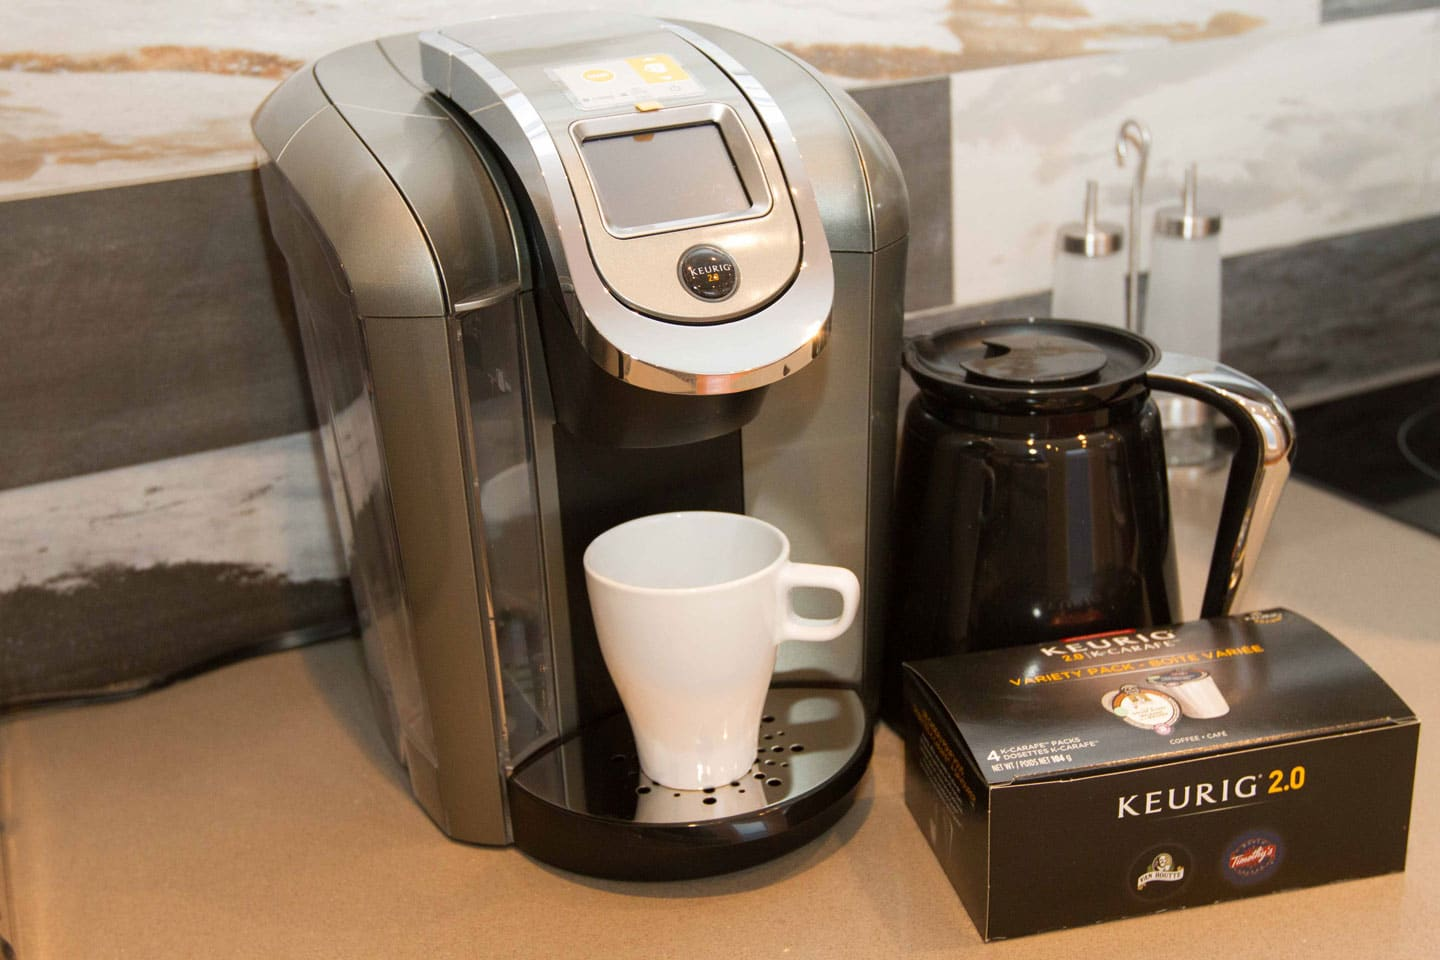 Entertainer: Keurig coffee machine with pods provided